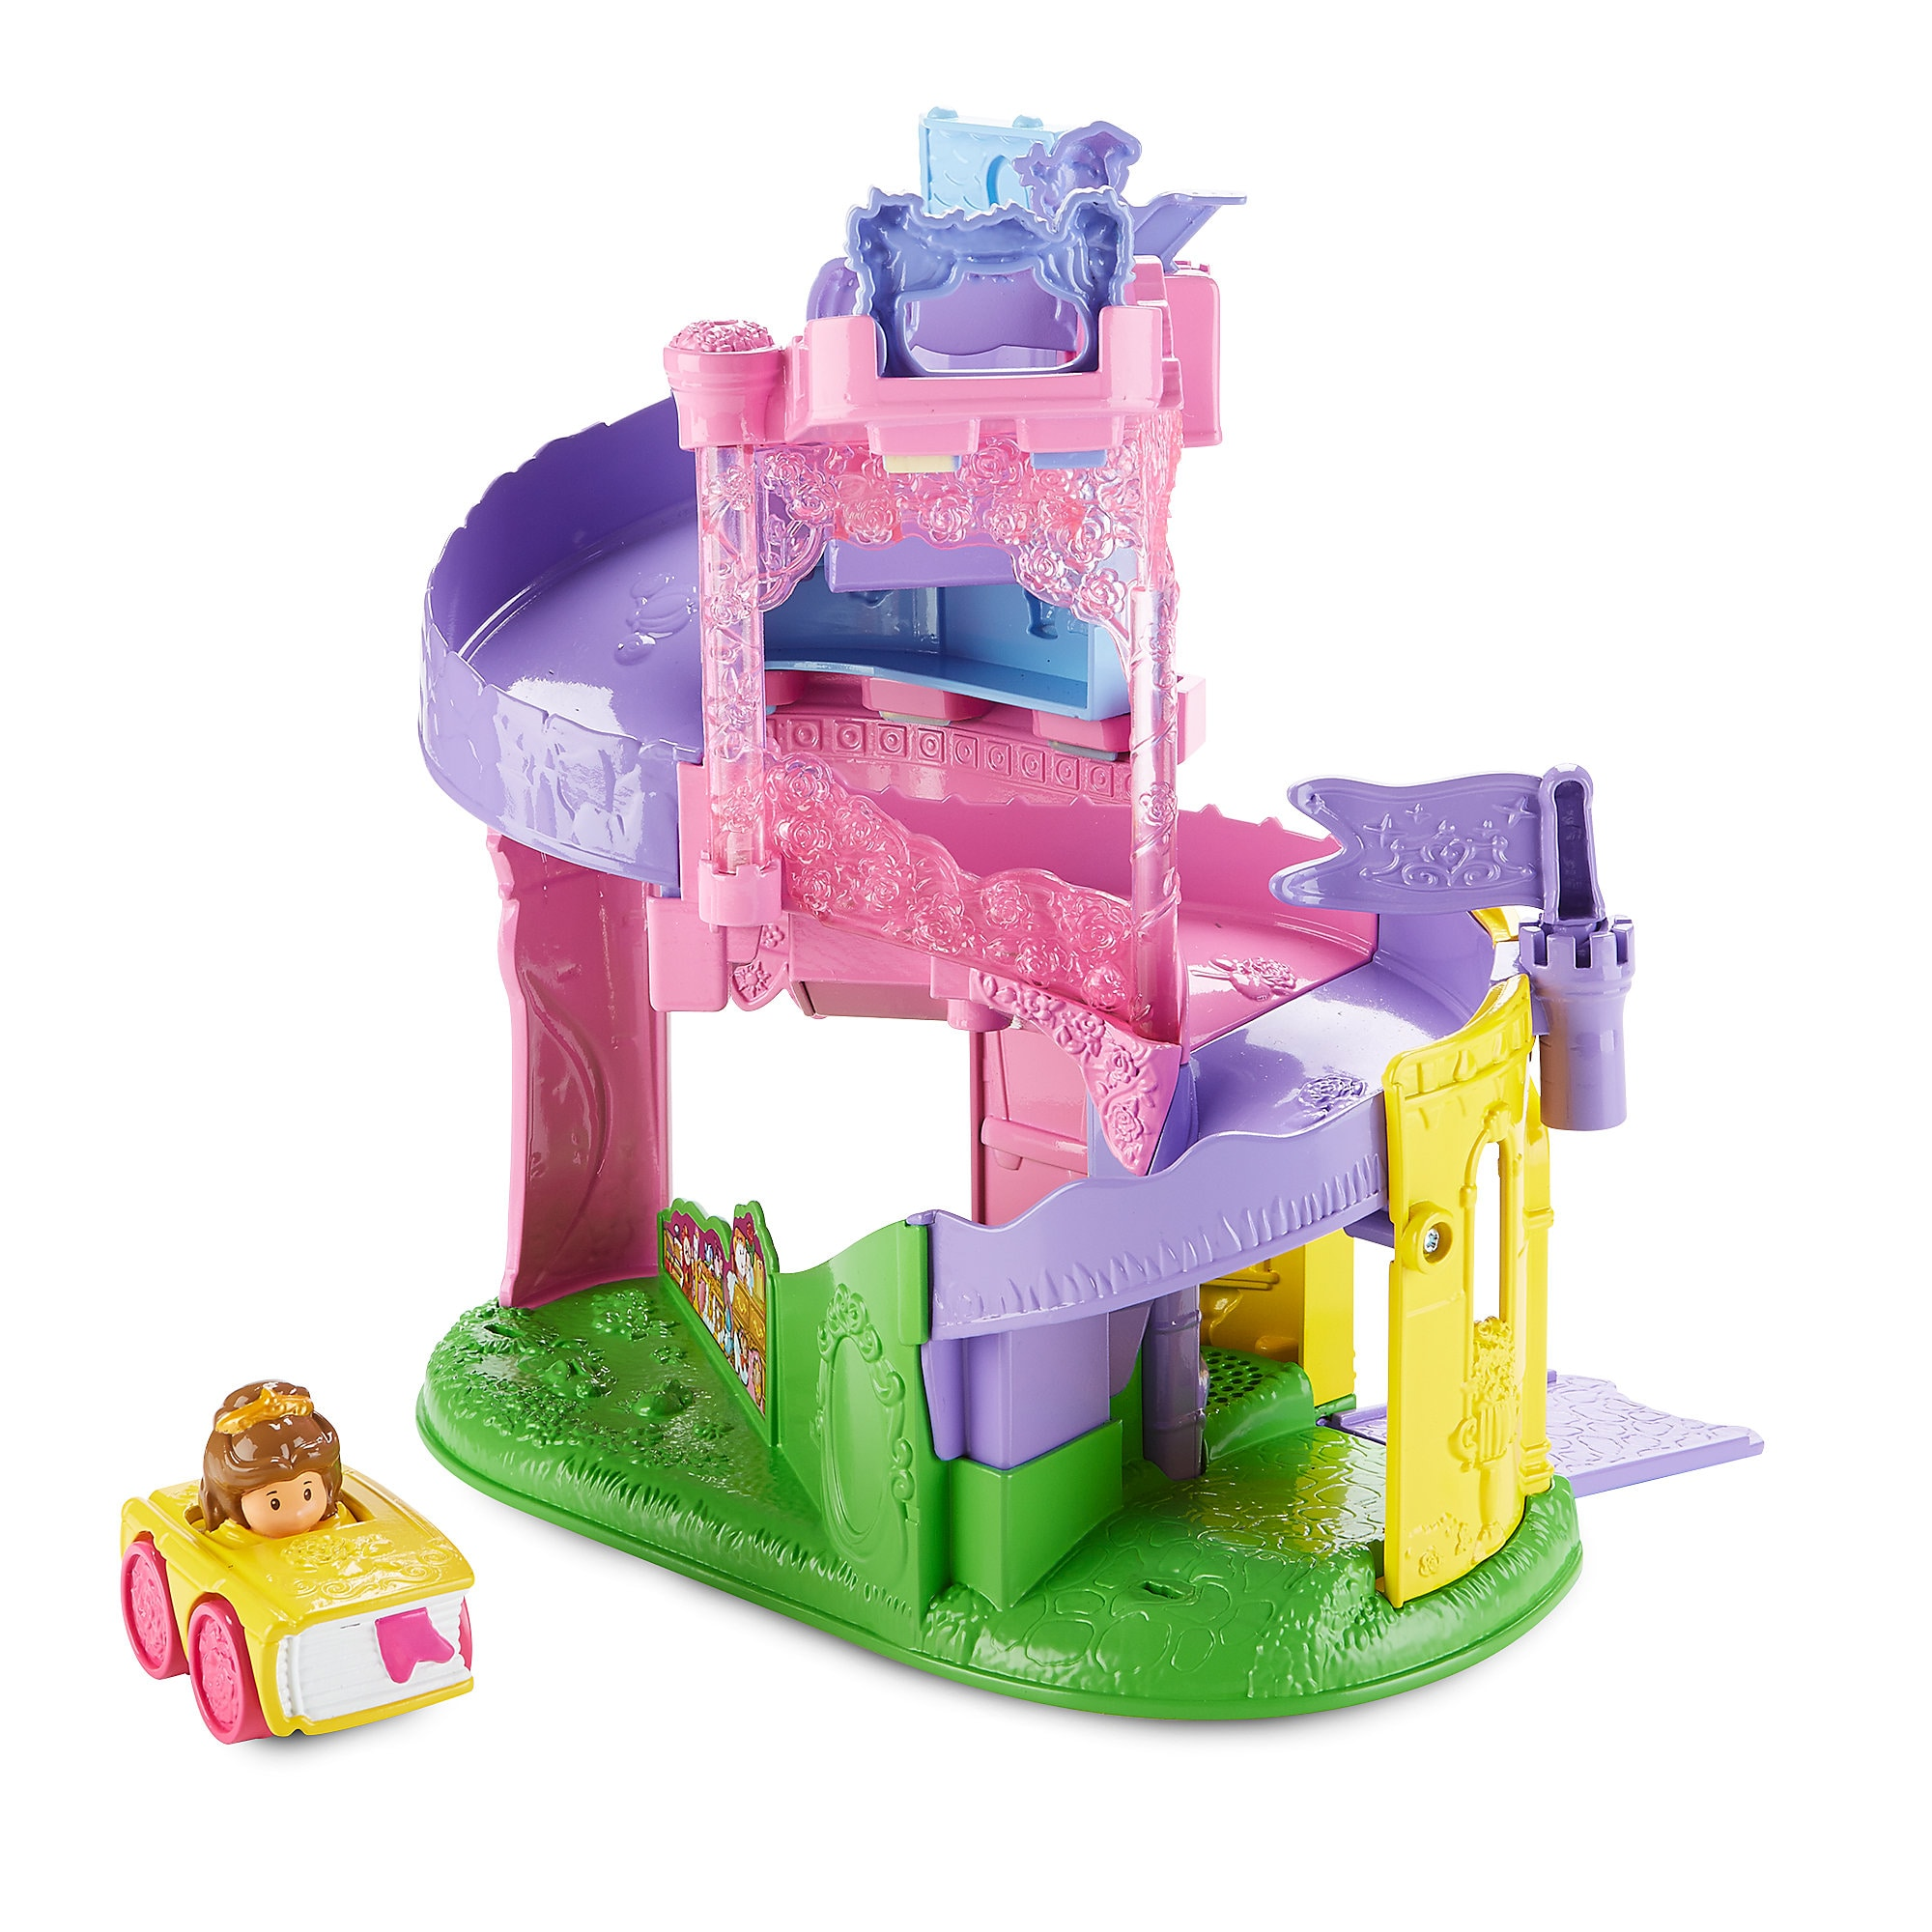 Disney Princess Light & Twist Wheelies Tower by Mattel - Belle